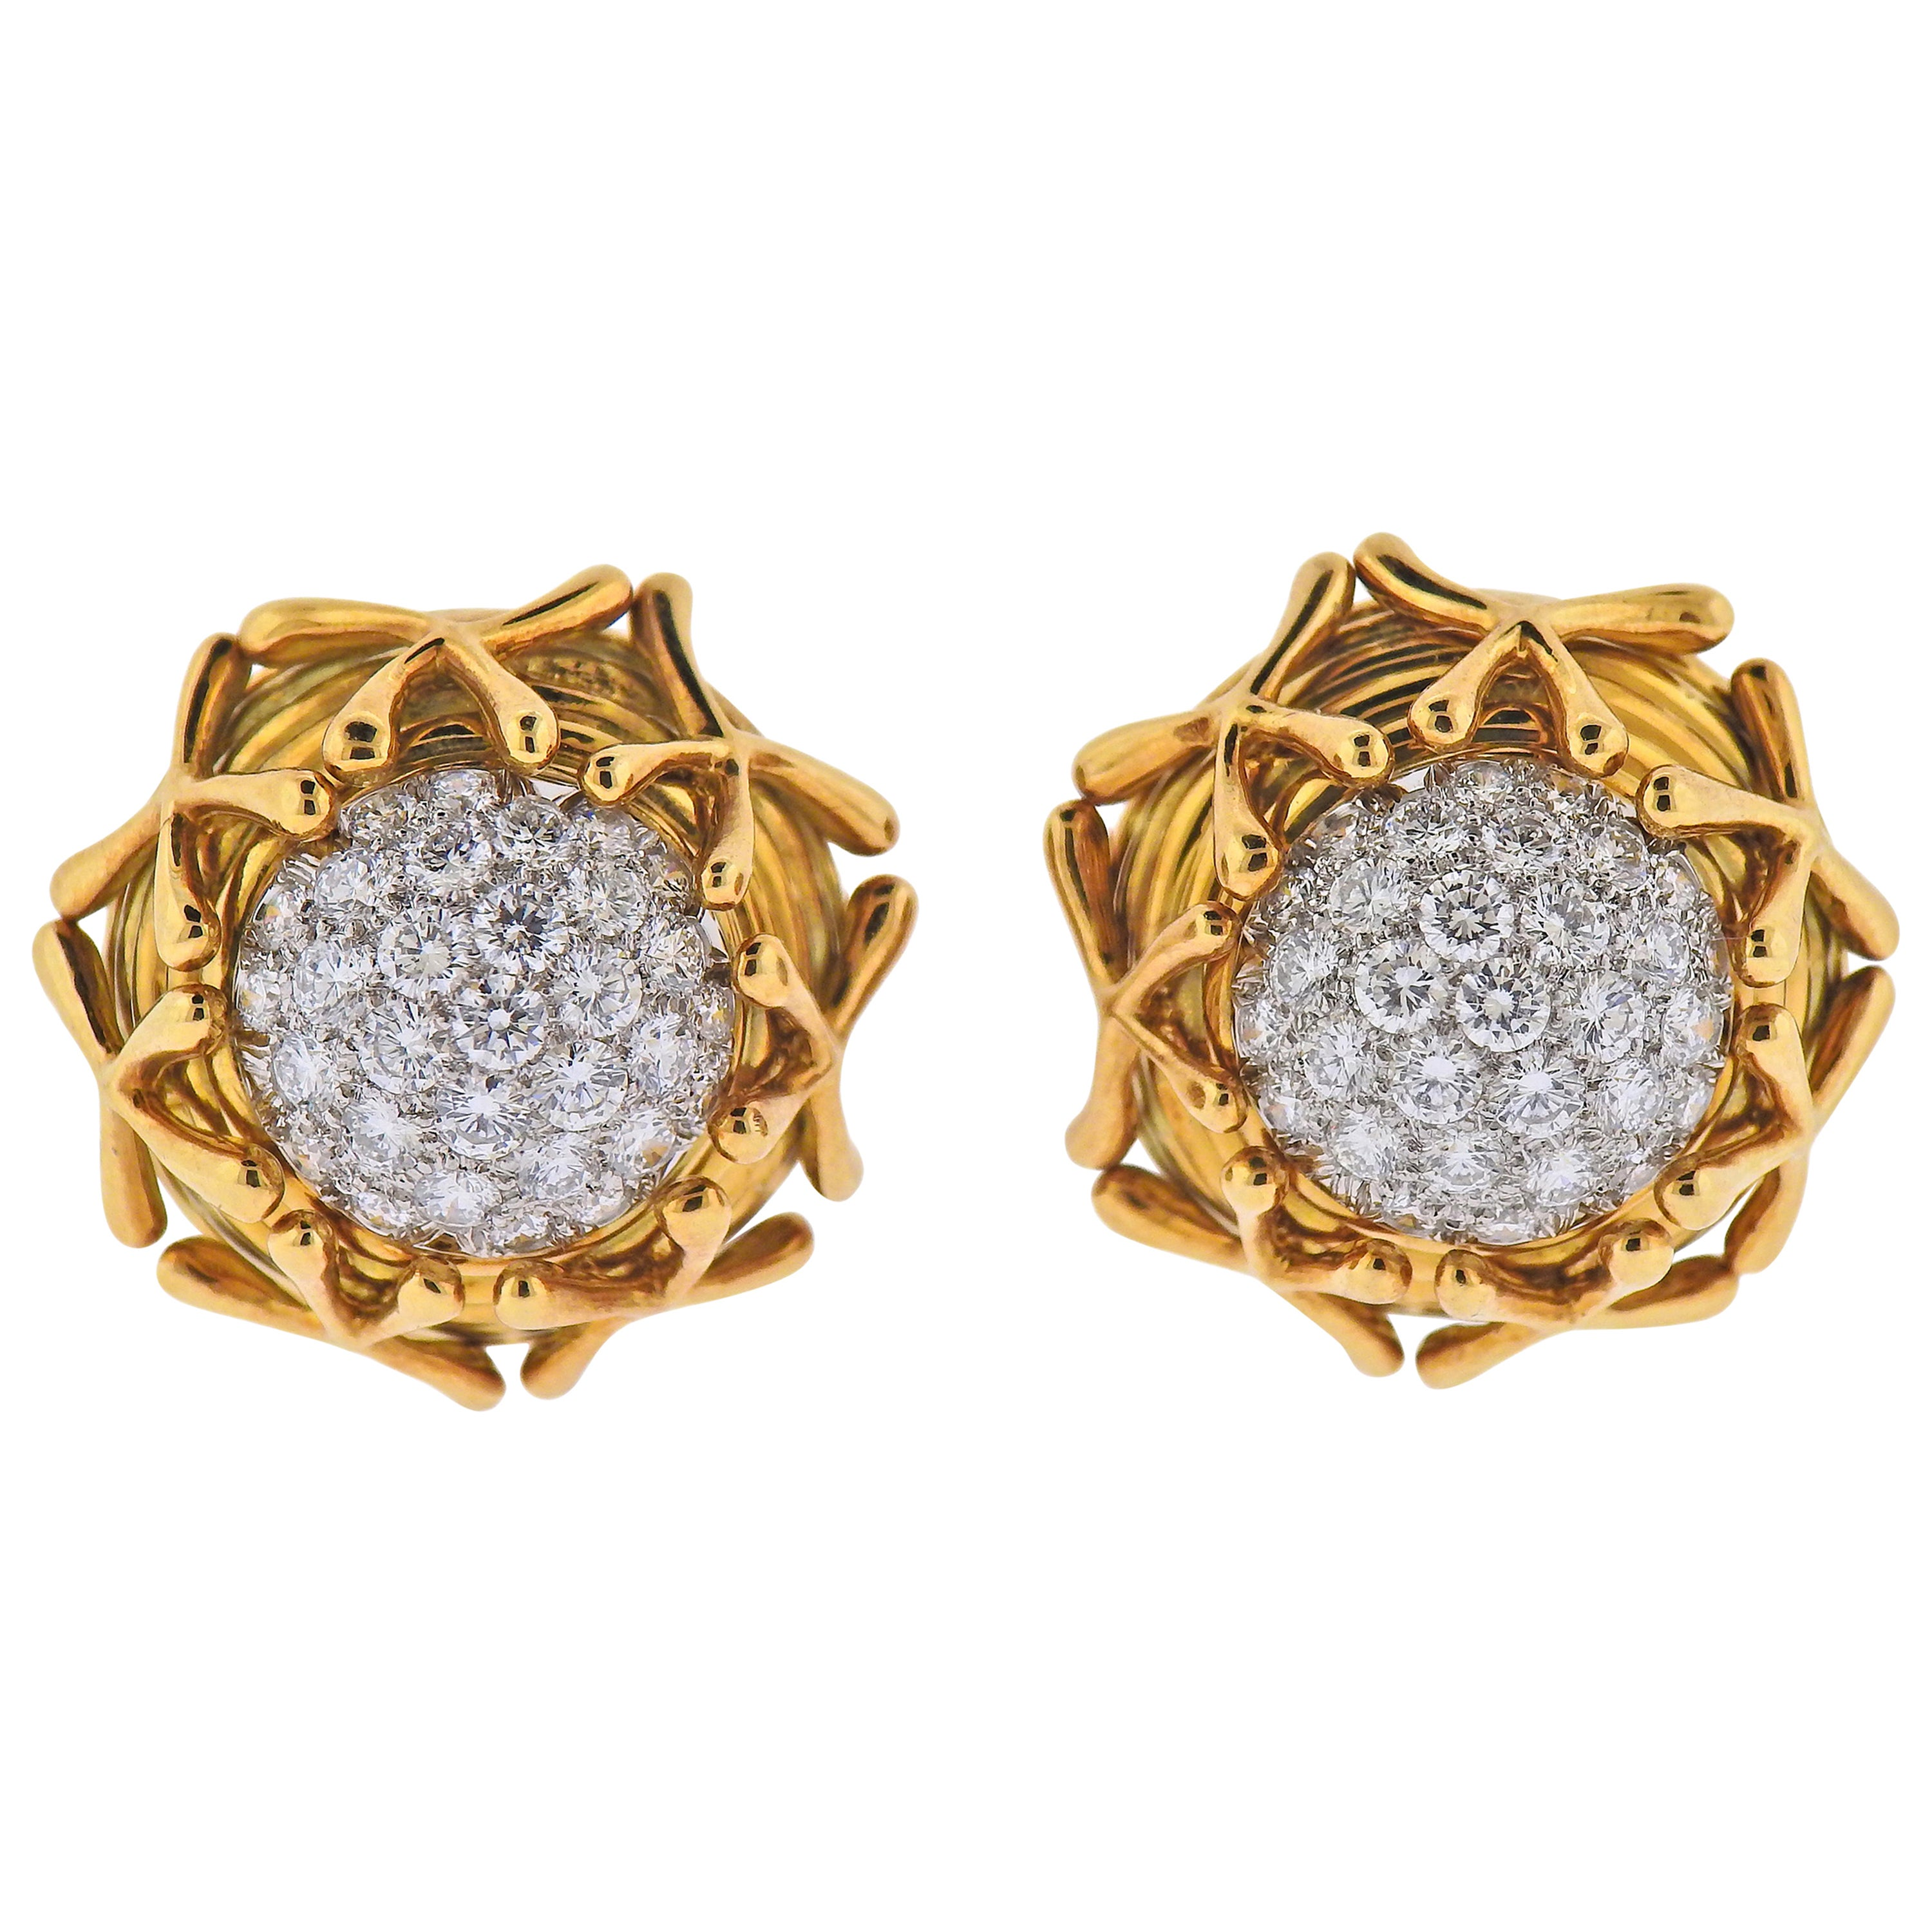 Tiffany & Co Schlauberger Diamond Platinum Gold Earrings